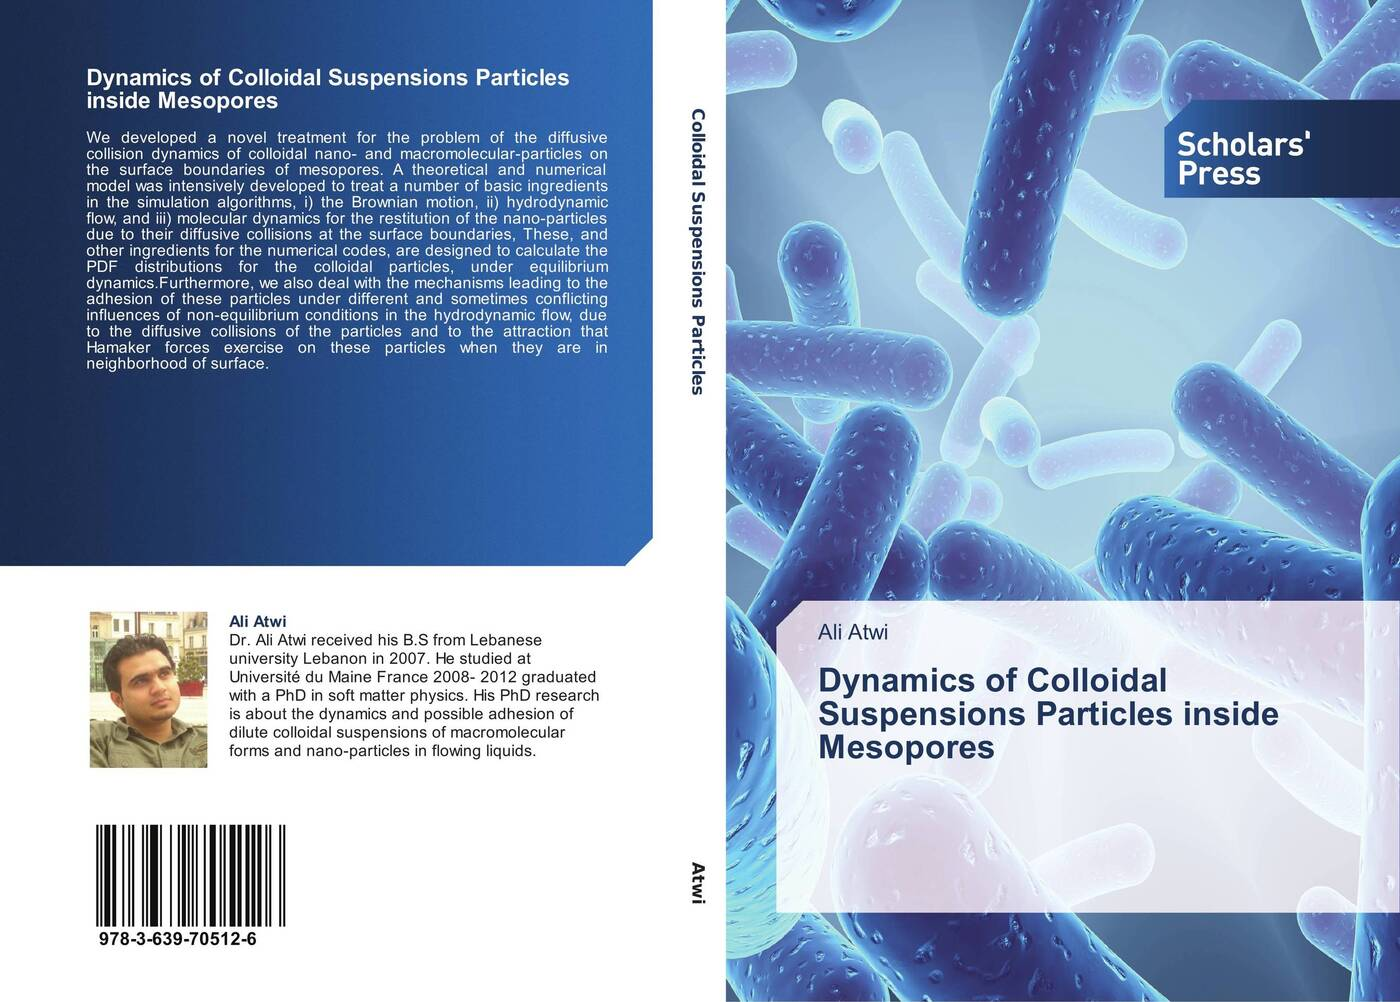 Ali Atwi Dynamics of Colloidal Suspensions Particles inside Mesopores alexandre macedo fernandes double diffusive salt finger convection in a laminar shear flow